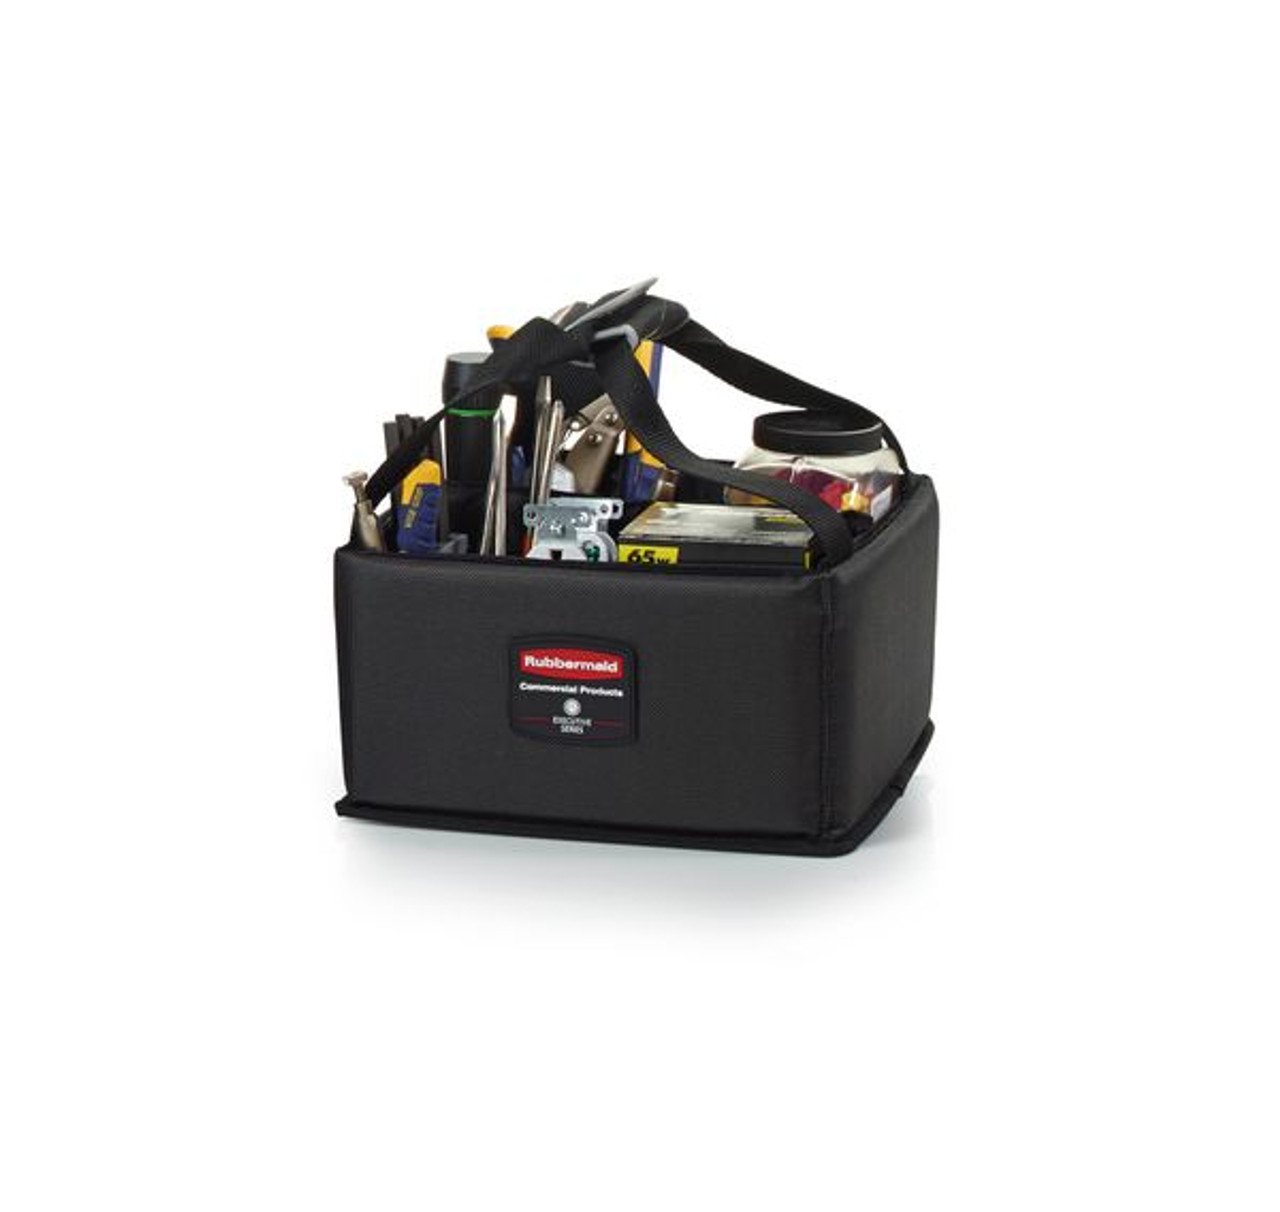 Rubbermaid Quick Cart Caddy Small (Replacement For Small Quick Carts) - 1902459